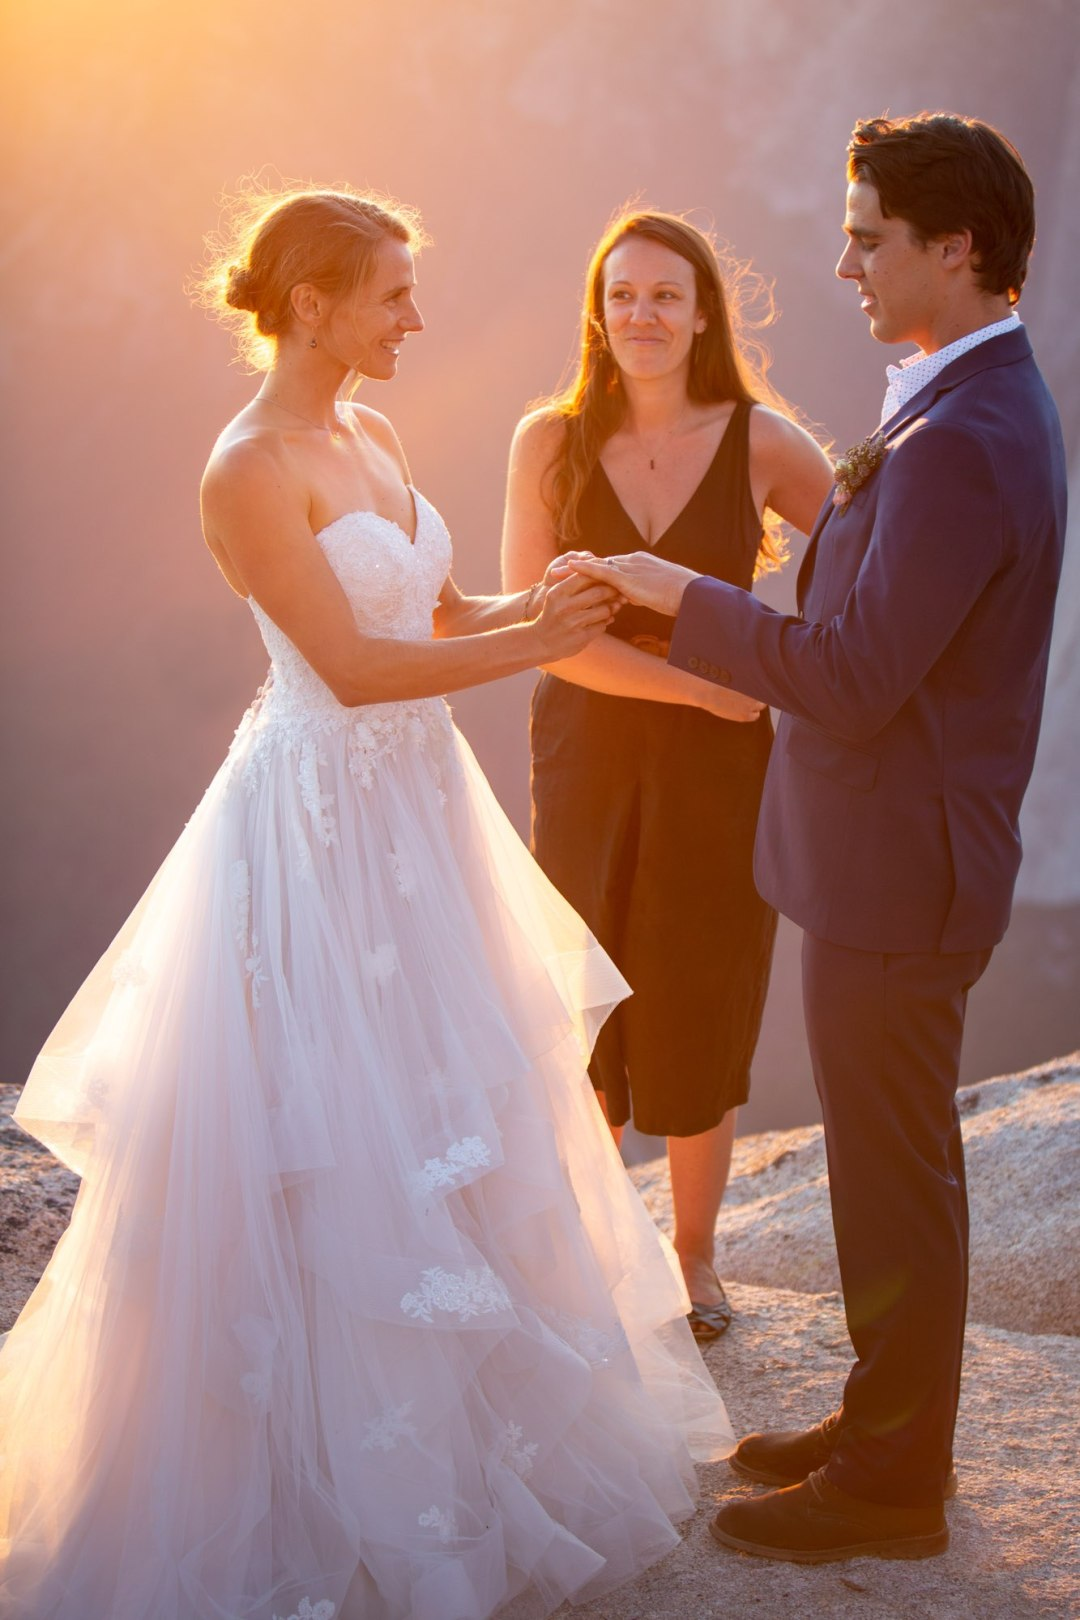 Groom puts ring on bride while officiant smiles